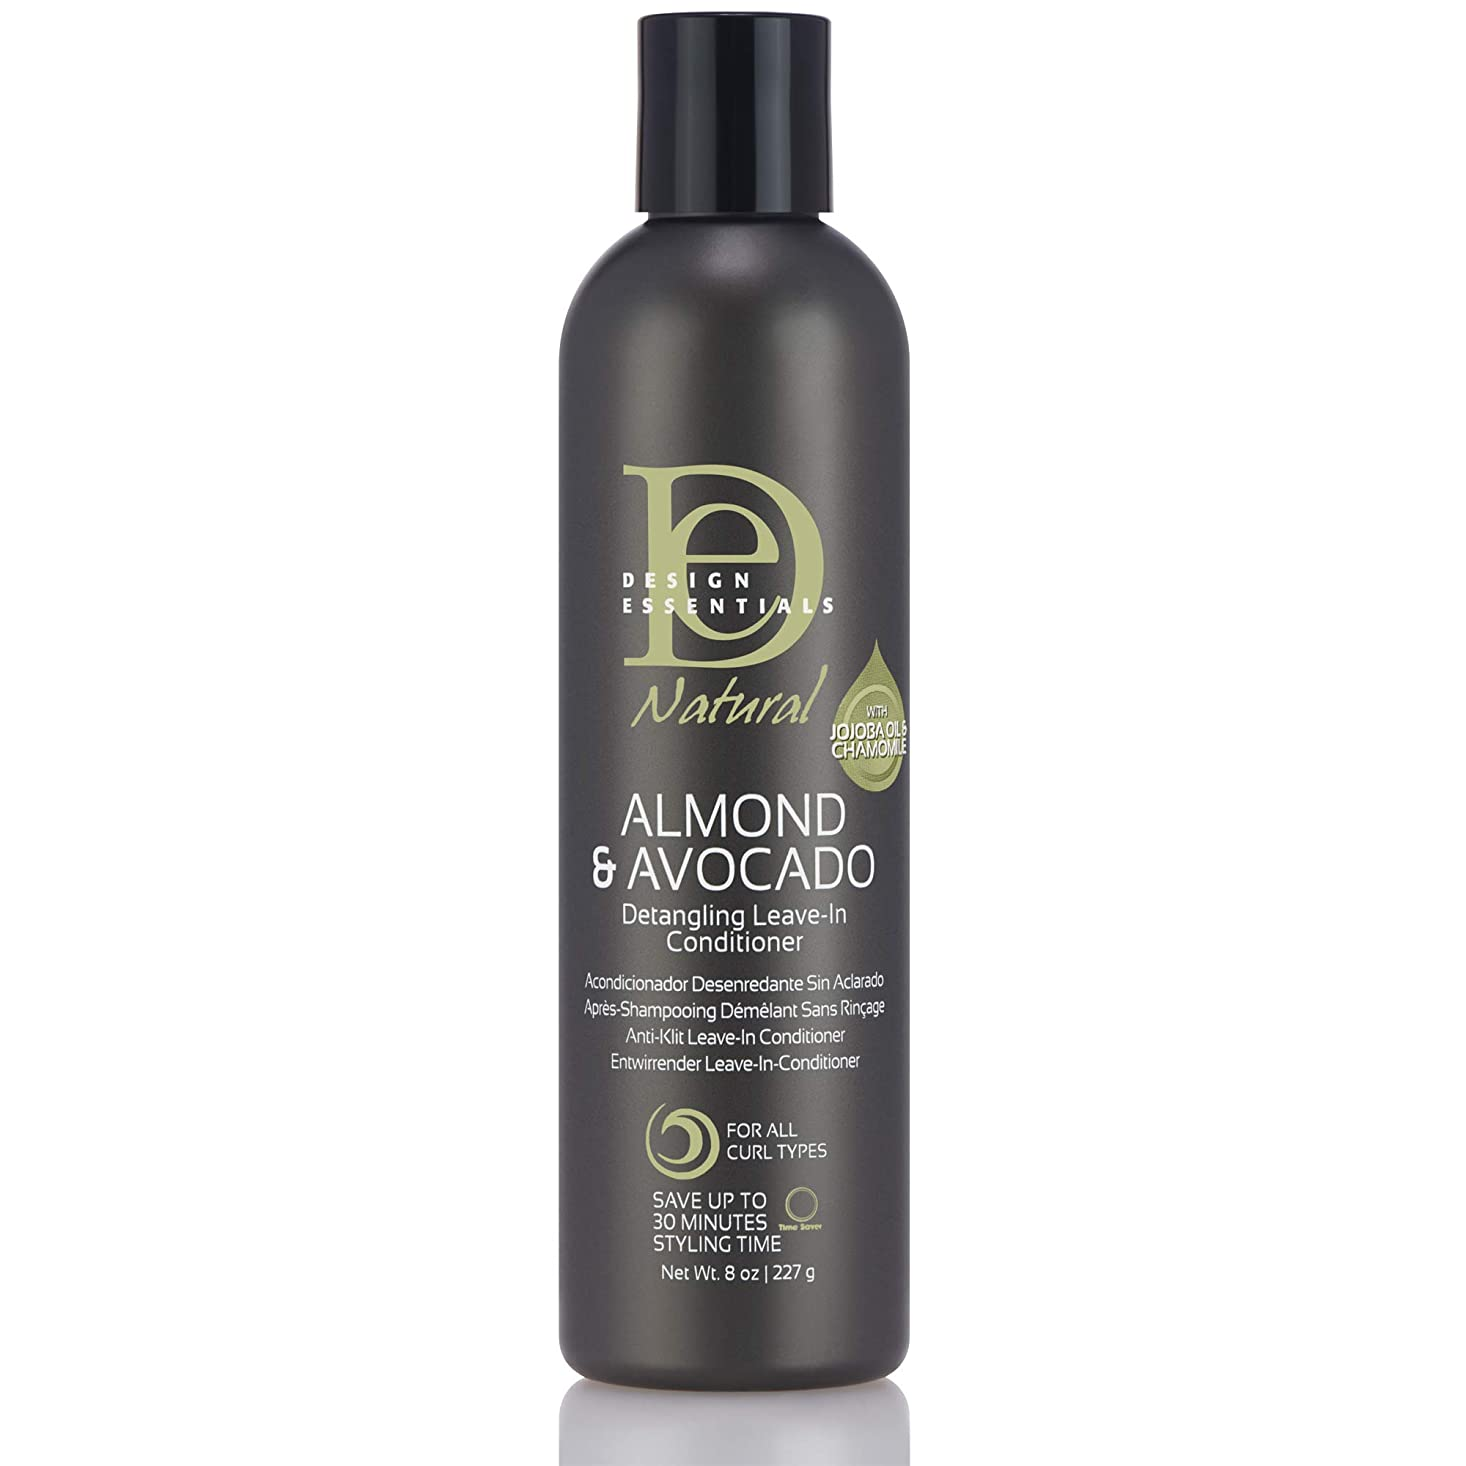 感情の工場酸Design Essentials Natural Instant Detangling Leave-In Conditioner for Healthy, Moisturized, Luminous Frizz-Free Hair-Almond & Avocado Collection, 8oz.